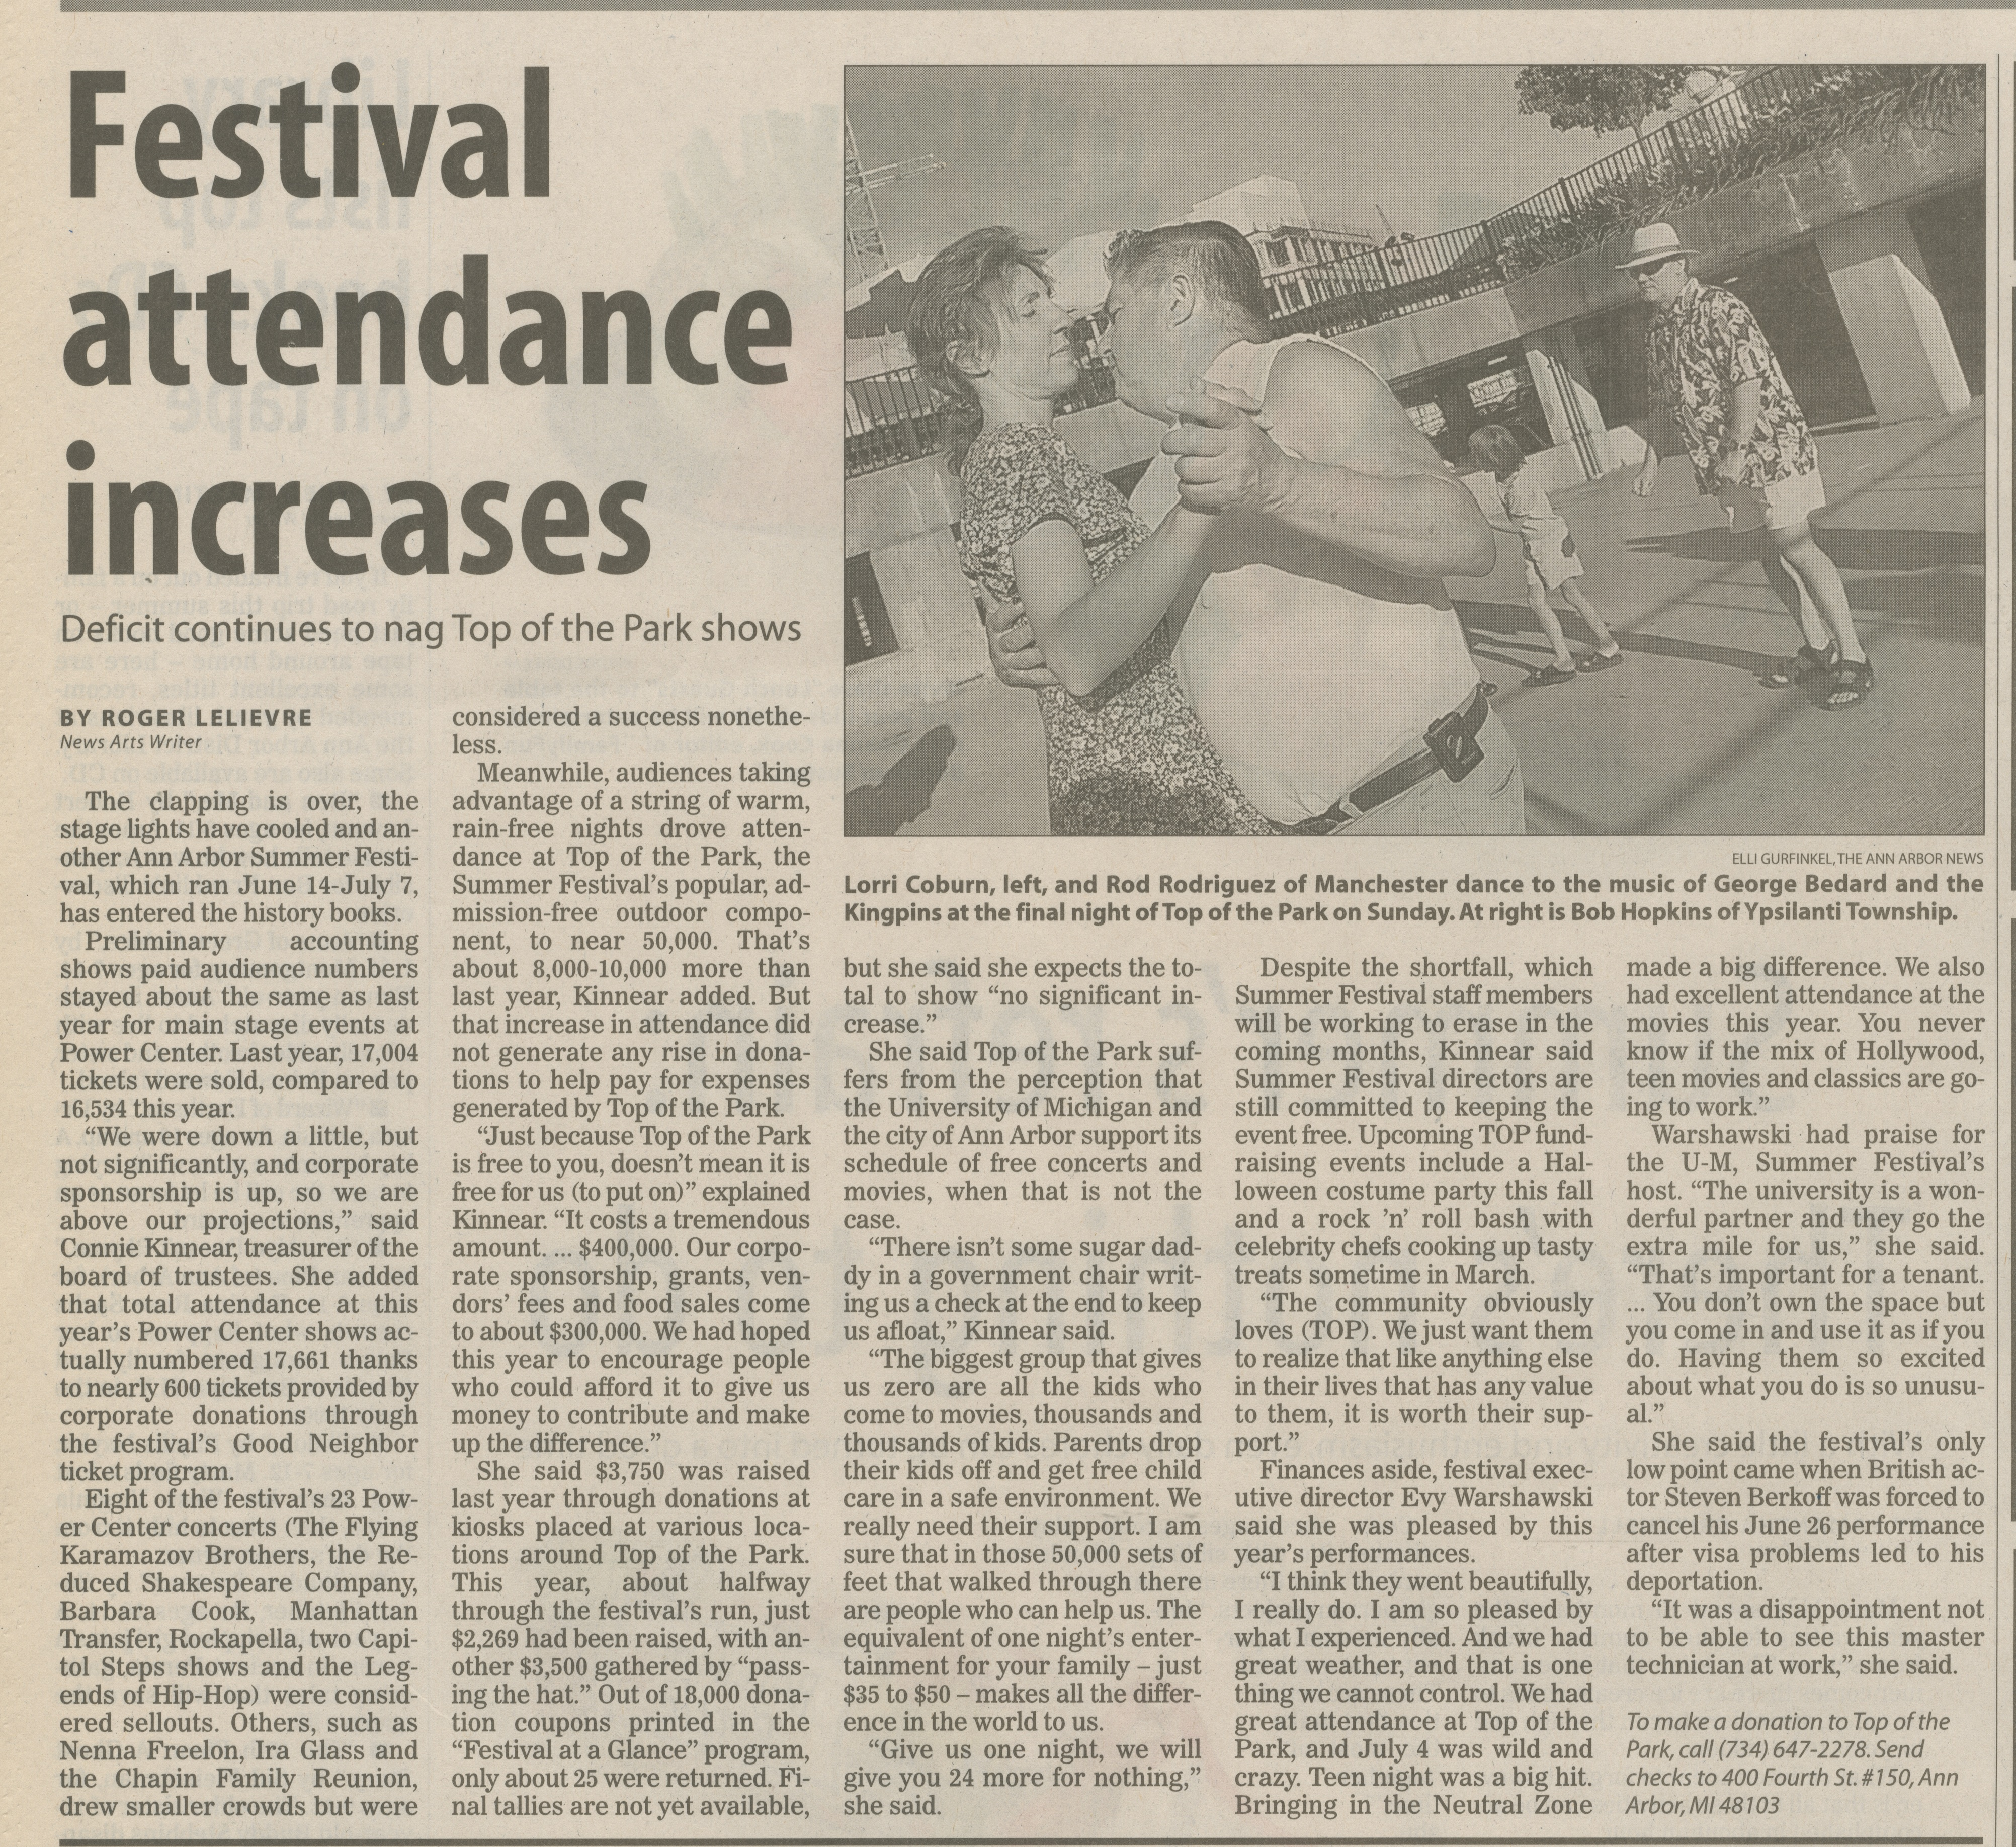 Festival attendance increases image